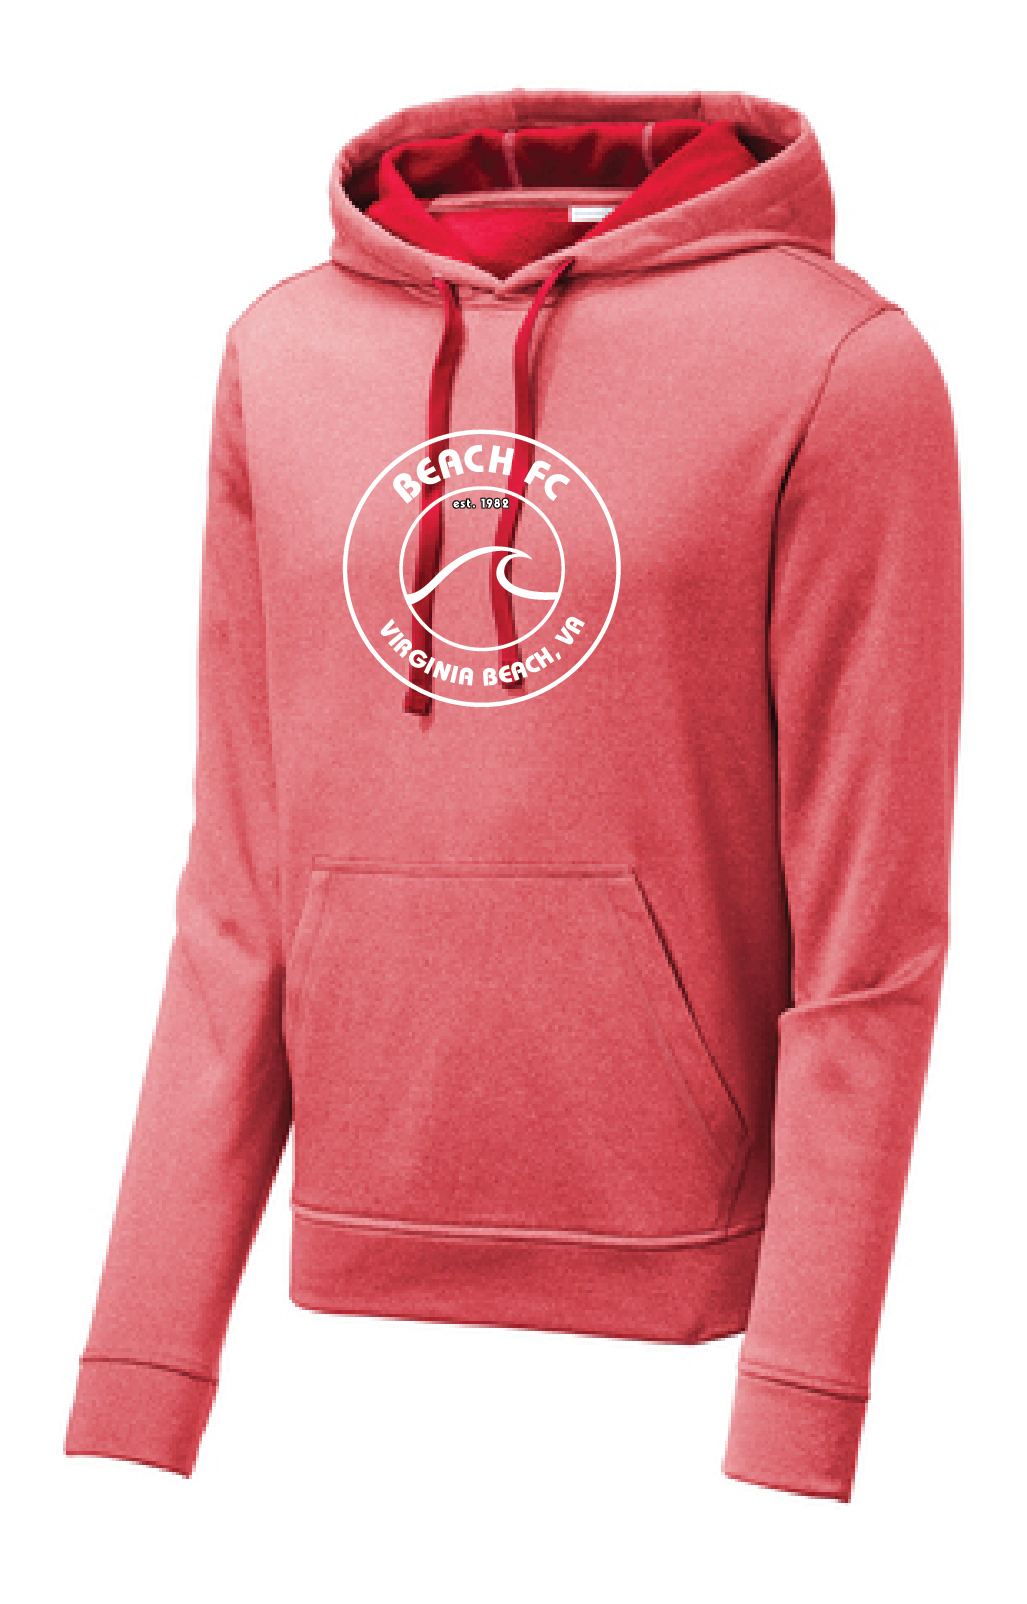 Sport-Wick Performance Heather Fleece Hooded Pullover / Heather Red / Beach FC